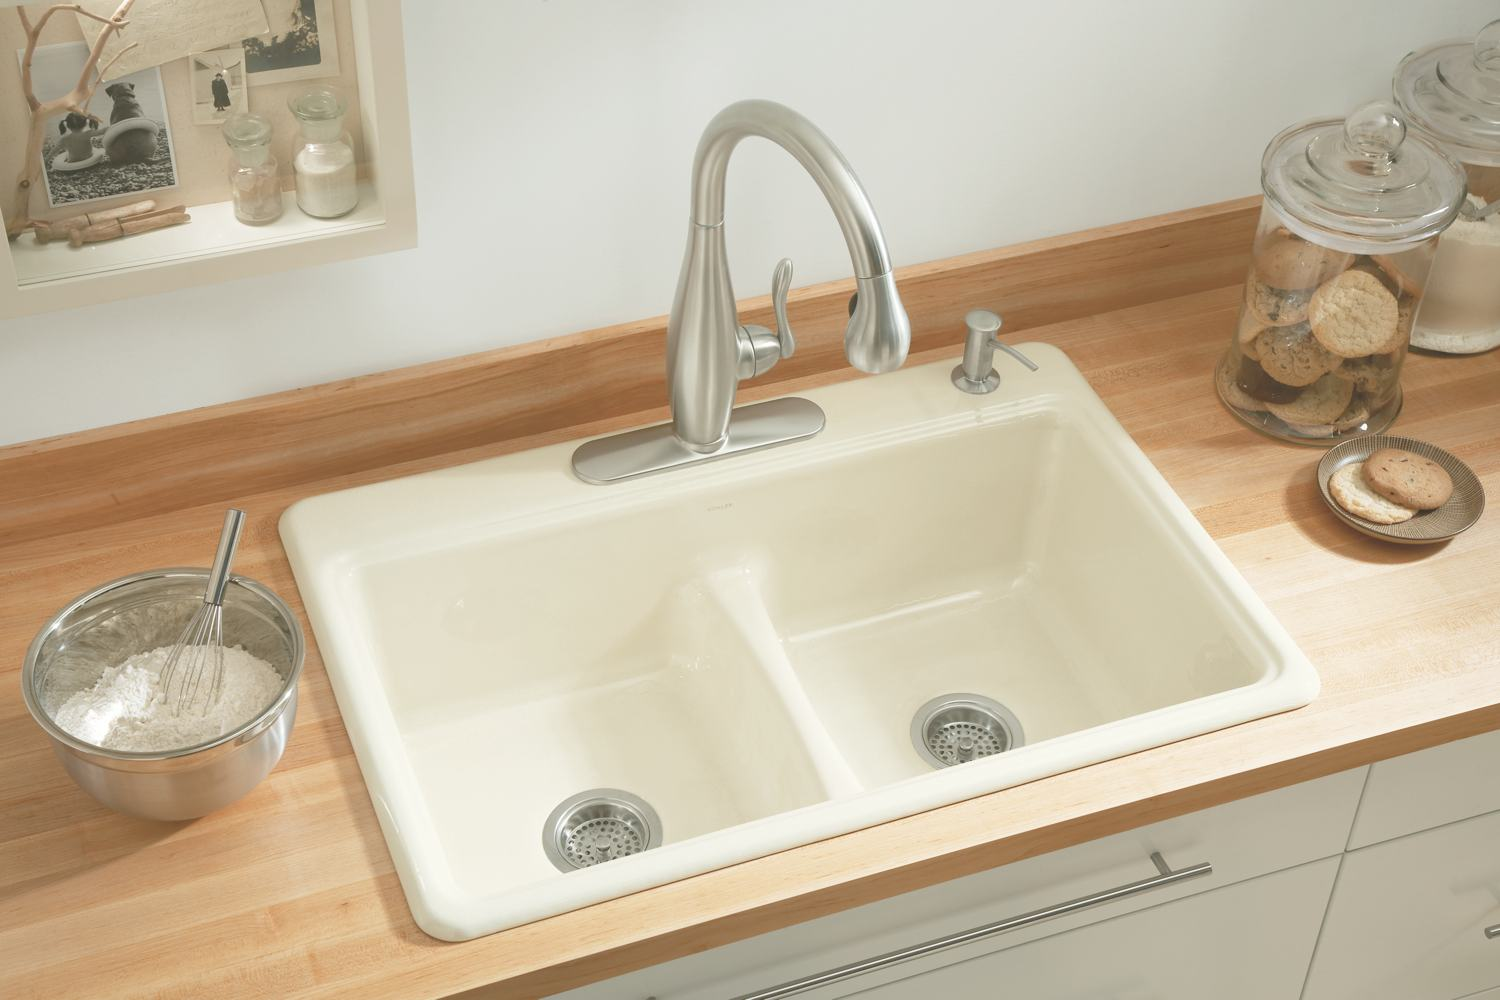 Kohler Kitchen Sinks : KOHLER K-5838-4-0 Deerfield Smart Divide Self-Rimming Kitchen Sink ...